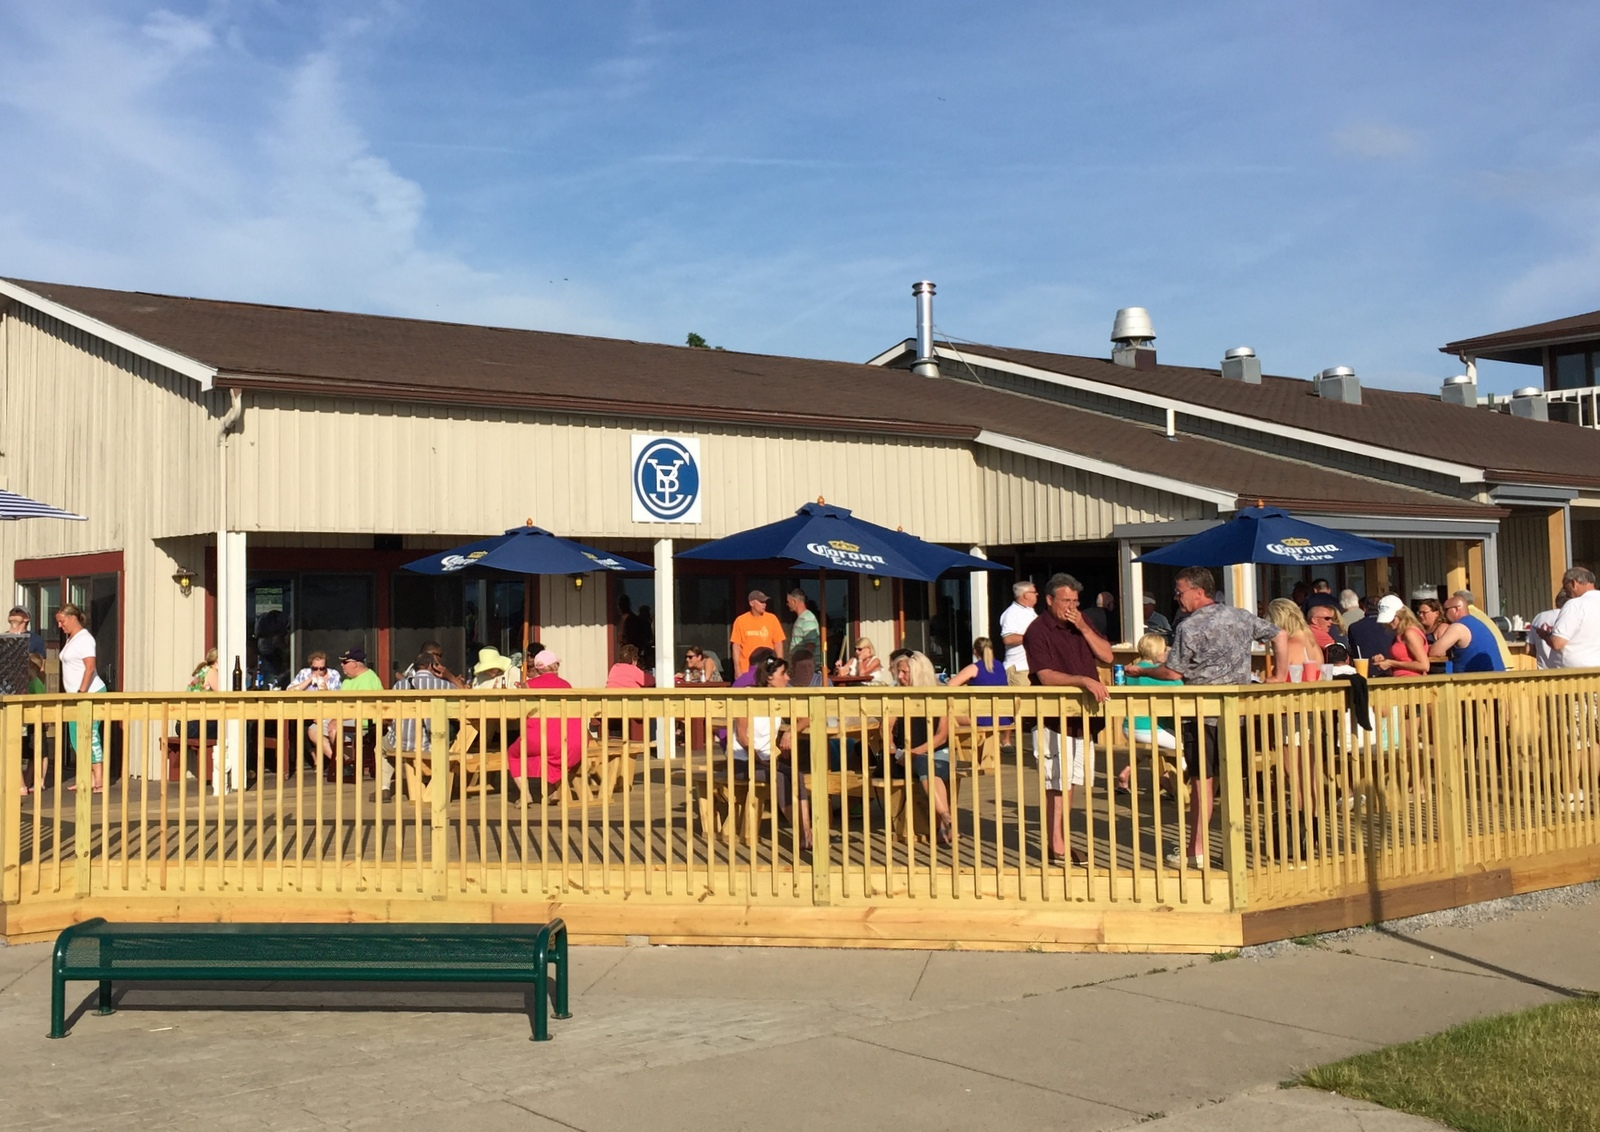 Charlie's Boat Yard, pictured here in May 2016, has expanded its dining seating capacity before its 2017 opening. (Andrew Galarneau/Buffalo News)